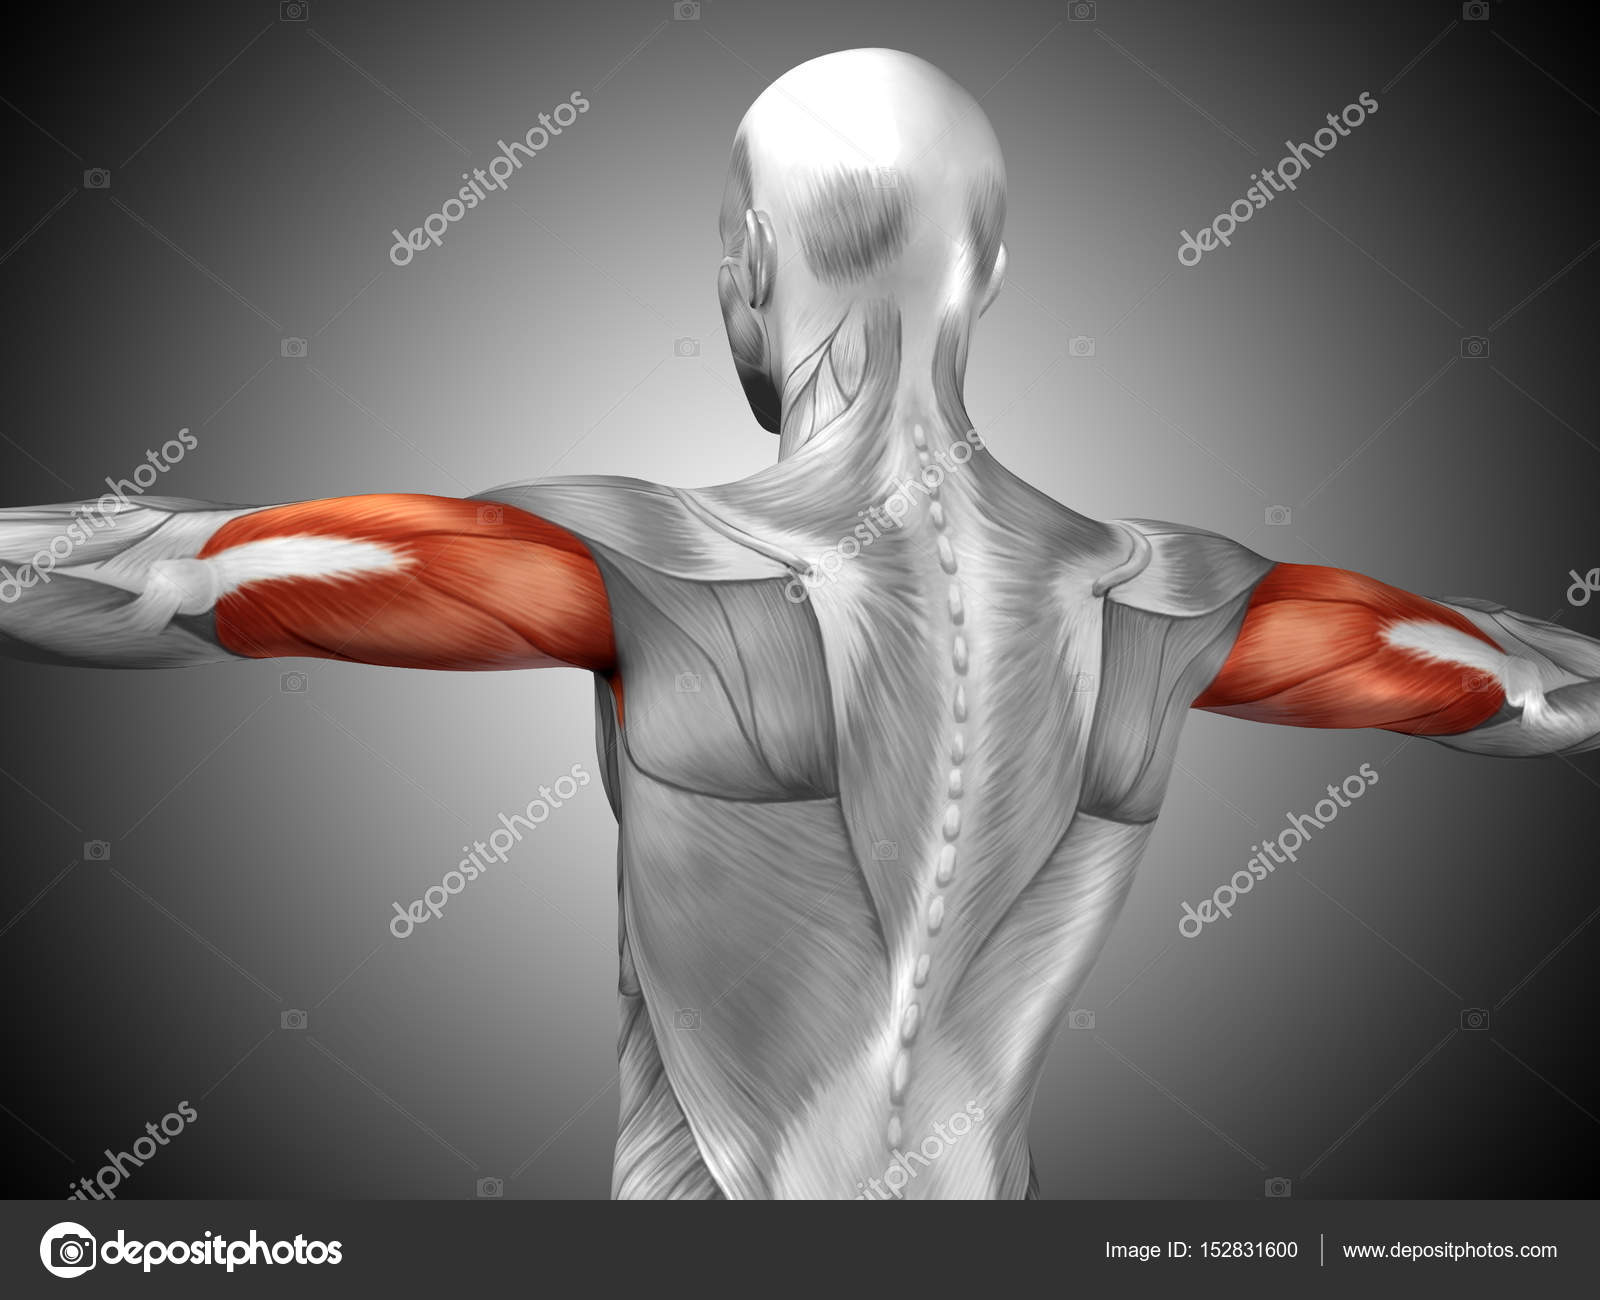 human triceps muscles anatomy — Stock Photo © design36 #152831600